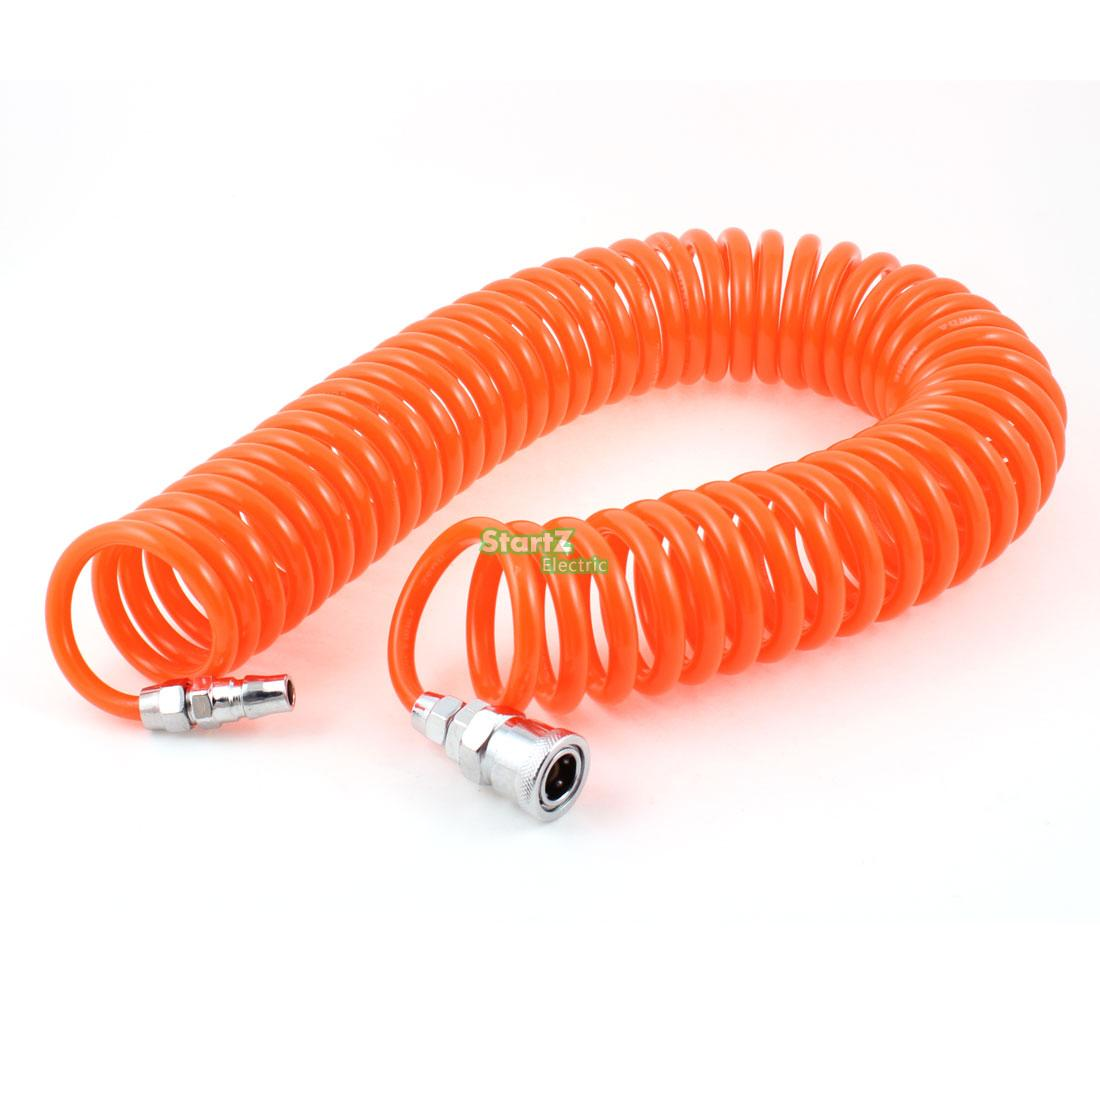 15M 49 Ft 8mm x 5mm Polyurethane PU Recoil Air Compressor Hose Tube Orange Red 6m 19 ft 10mm x 6 5mm polyurethane pu recoil air hose tube orangered